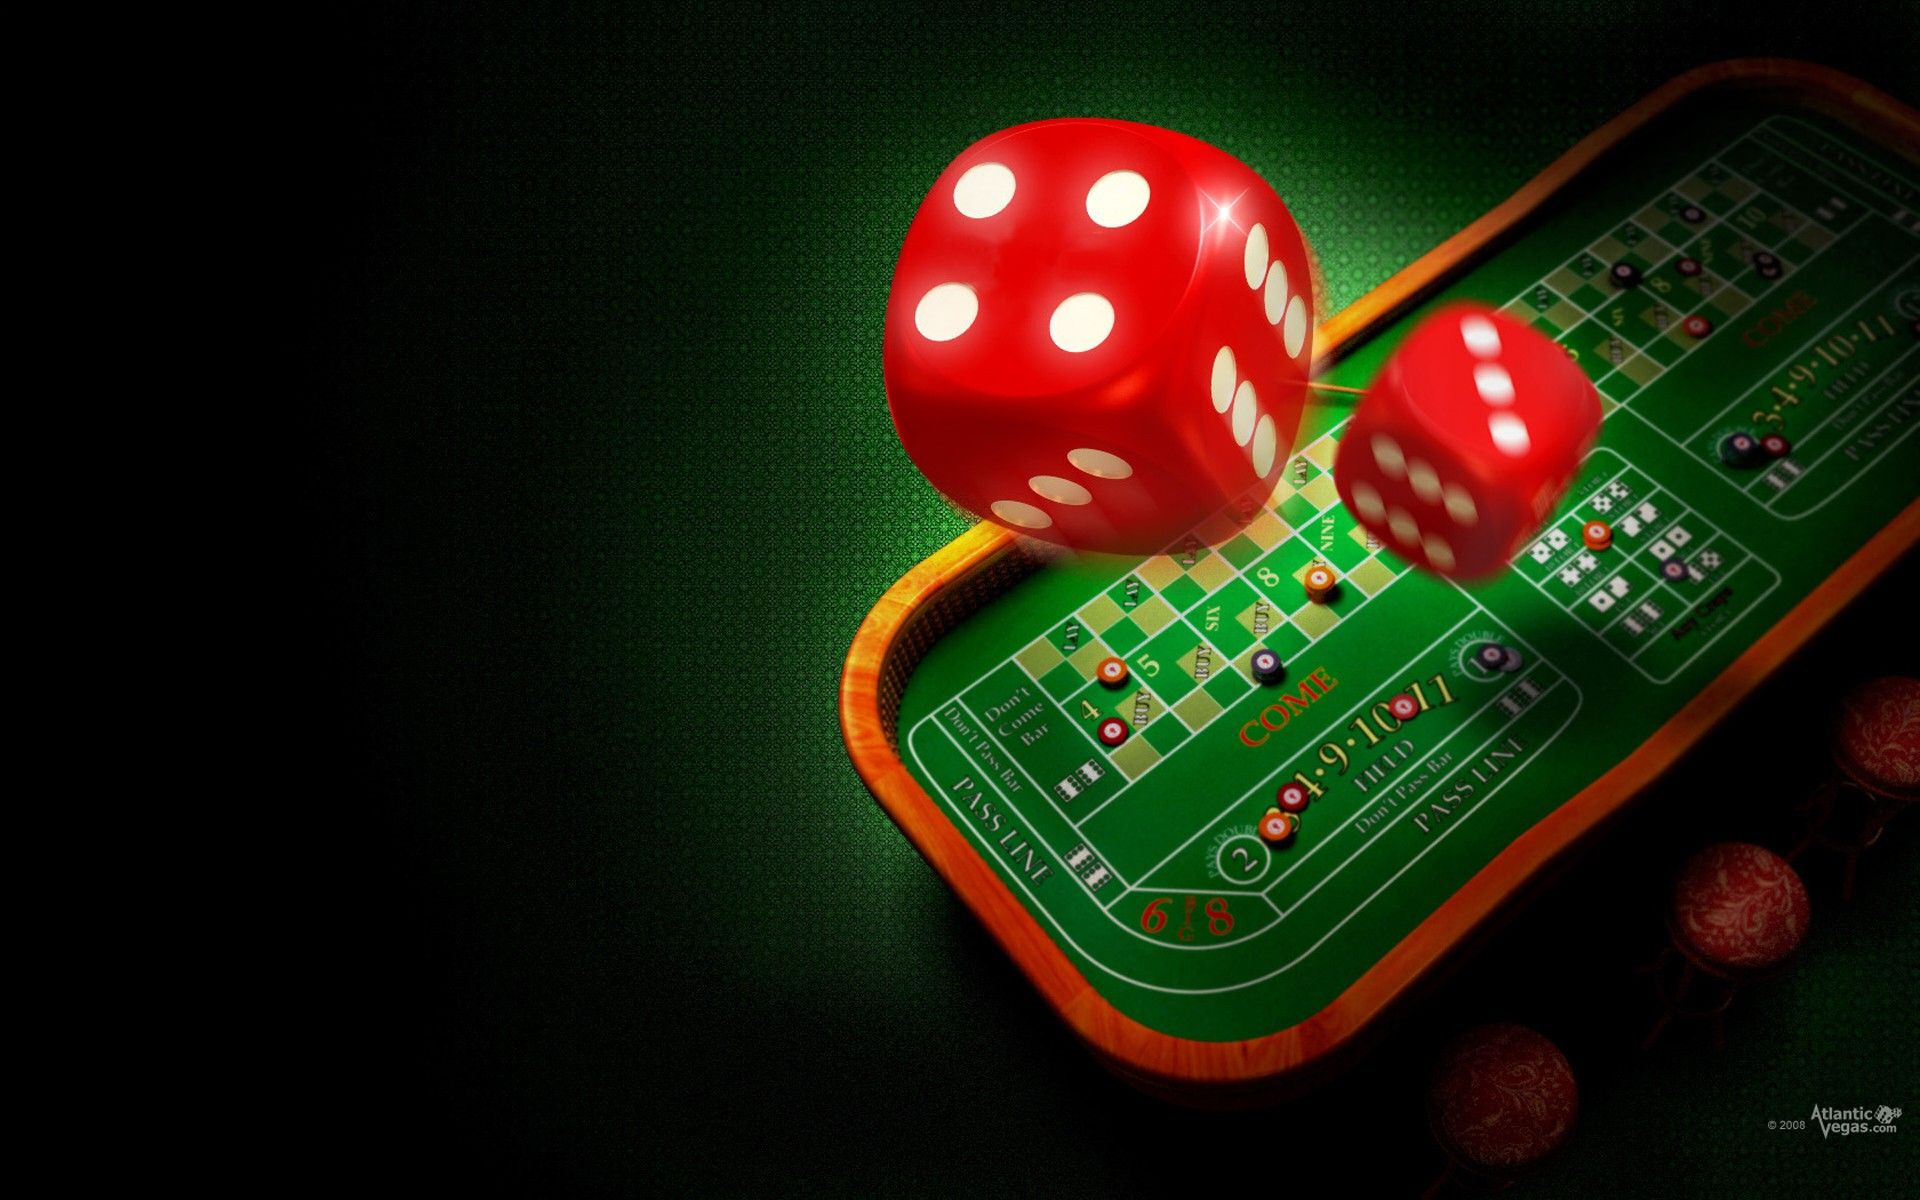 Gambling - Pay Attention To those 10 Signals